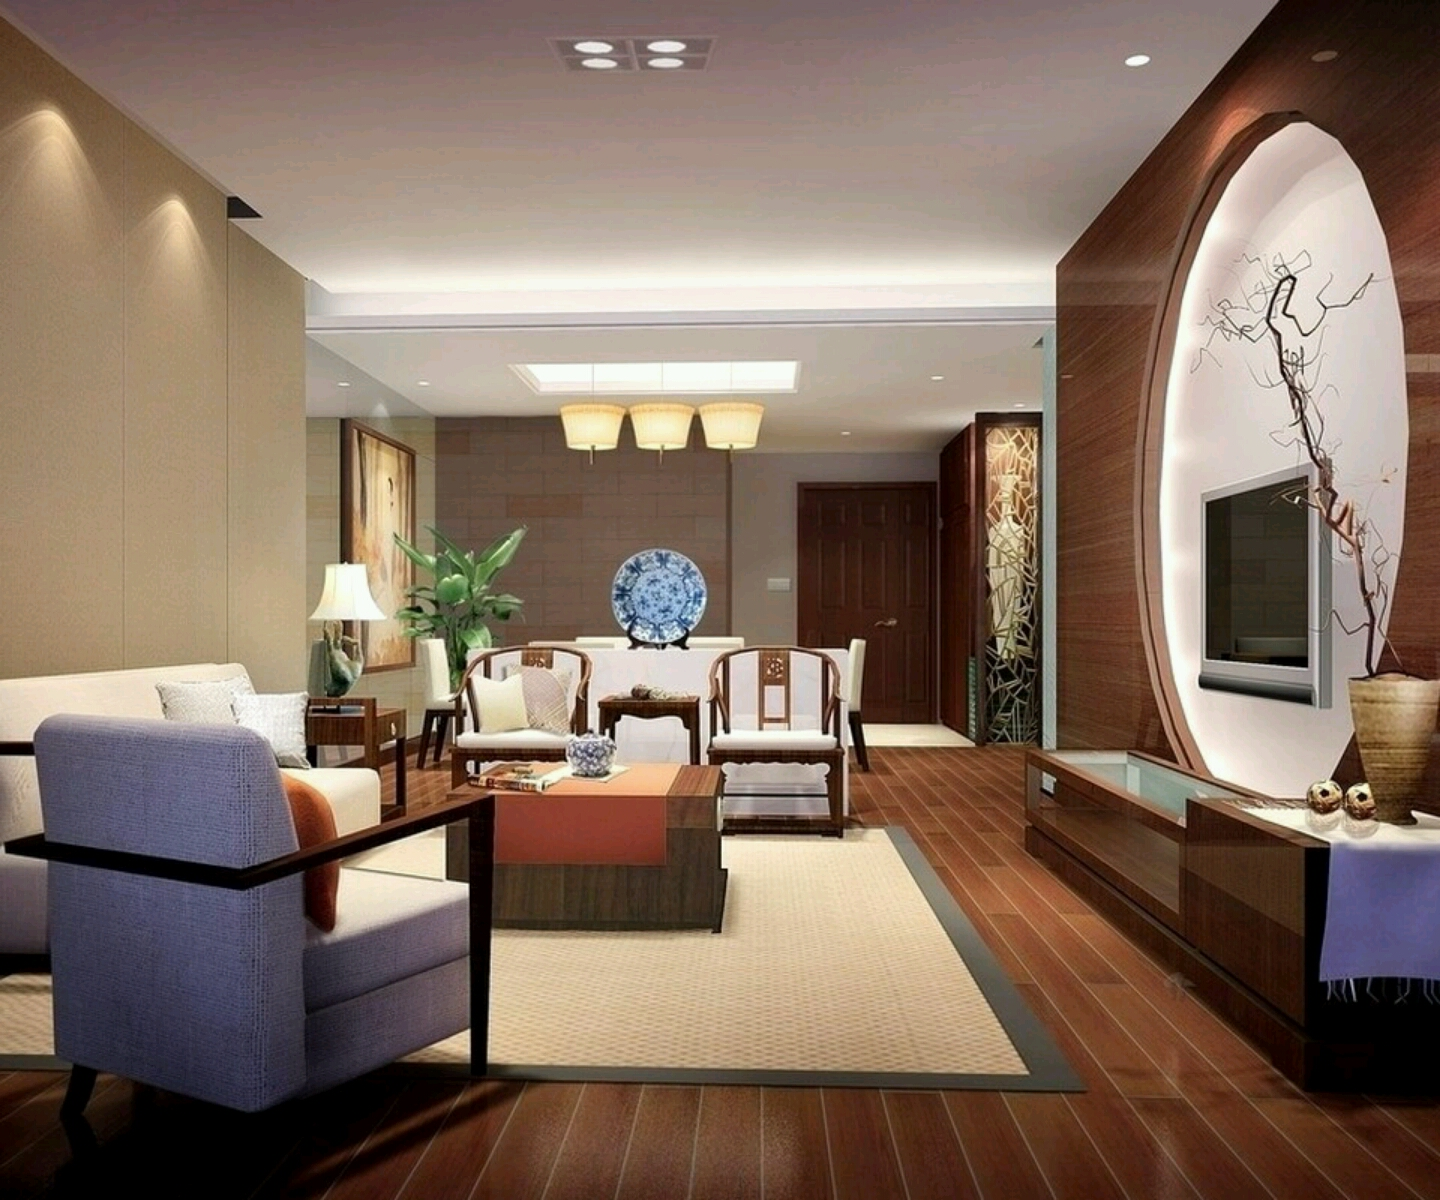 Luxury homes interior decoration living room designs ideas Living room interior design photo gallery